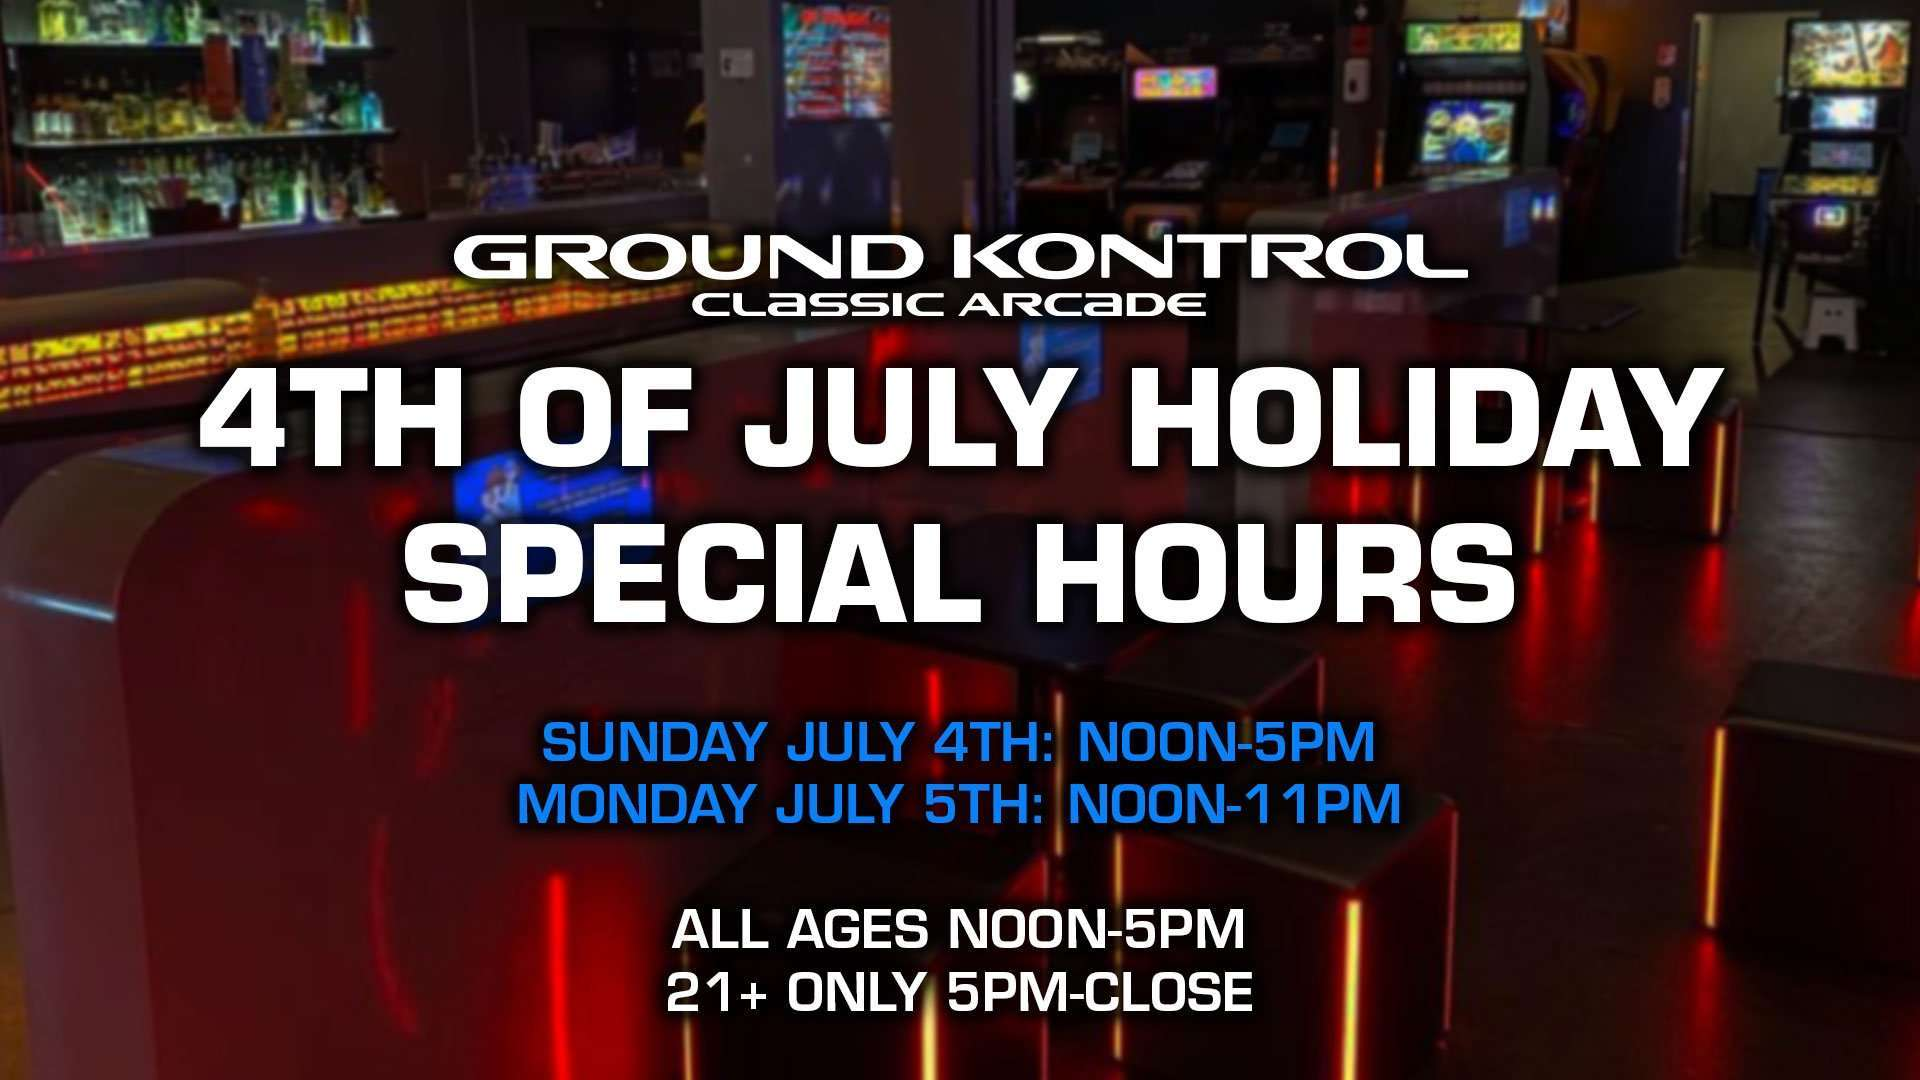 SPECIAL HOURS: Fourth of July Holiday